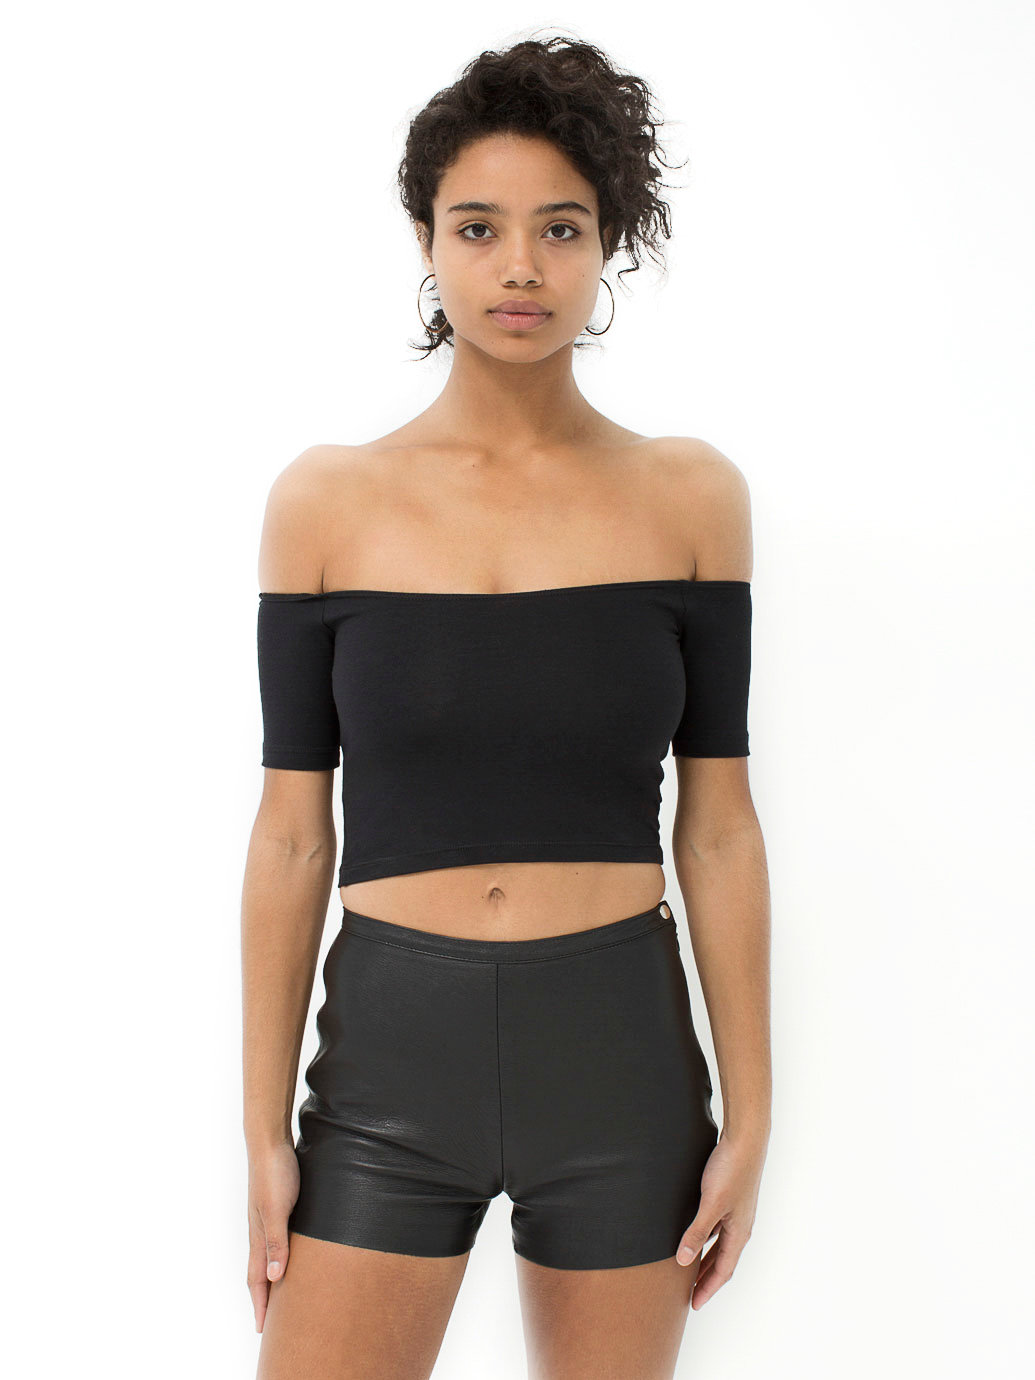 Find helpful customer reviews and review ratings for American Apparel Women's Cotton Spandex Off-Shoulder Crop Top at teraisompcz8d.ga Read honest and unbiased product reviews from our users.